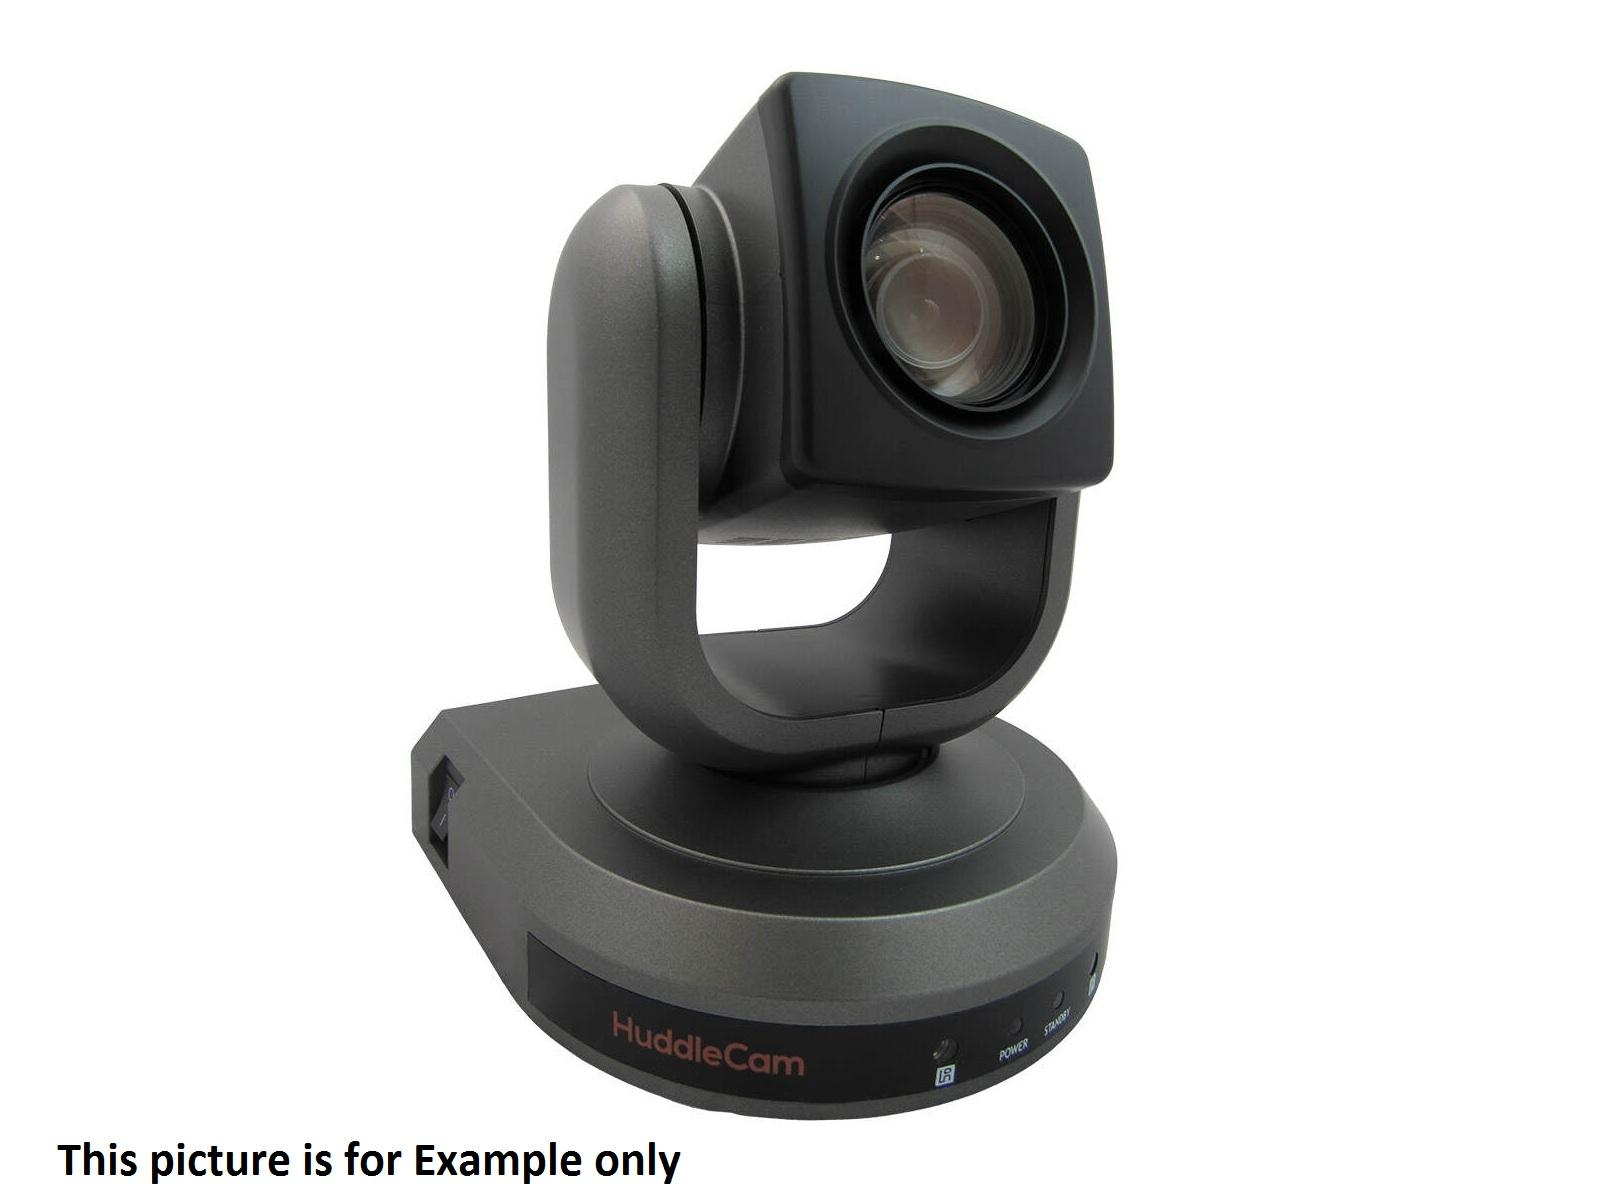 HuddleCamHD HC20X-WH-G2 20X Optical Zoom/USB 3.0/1920x1080p Camera/58 degree FOV Sony Lens/White